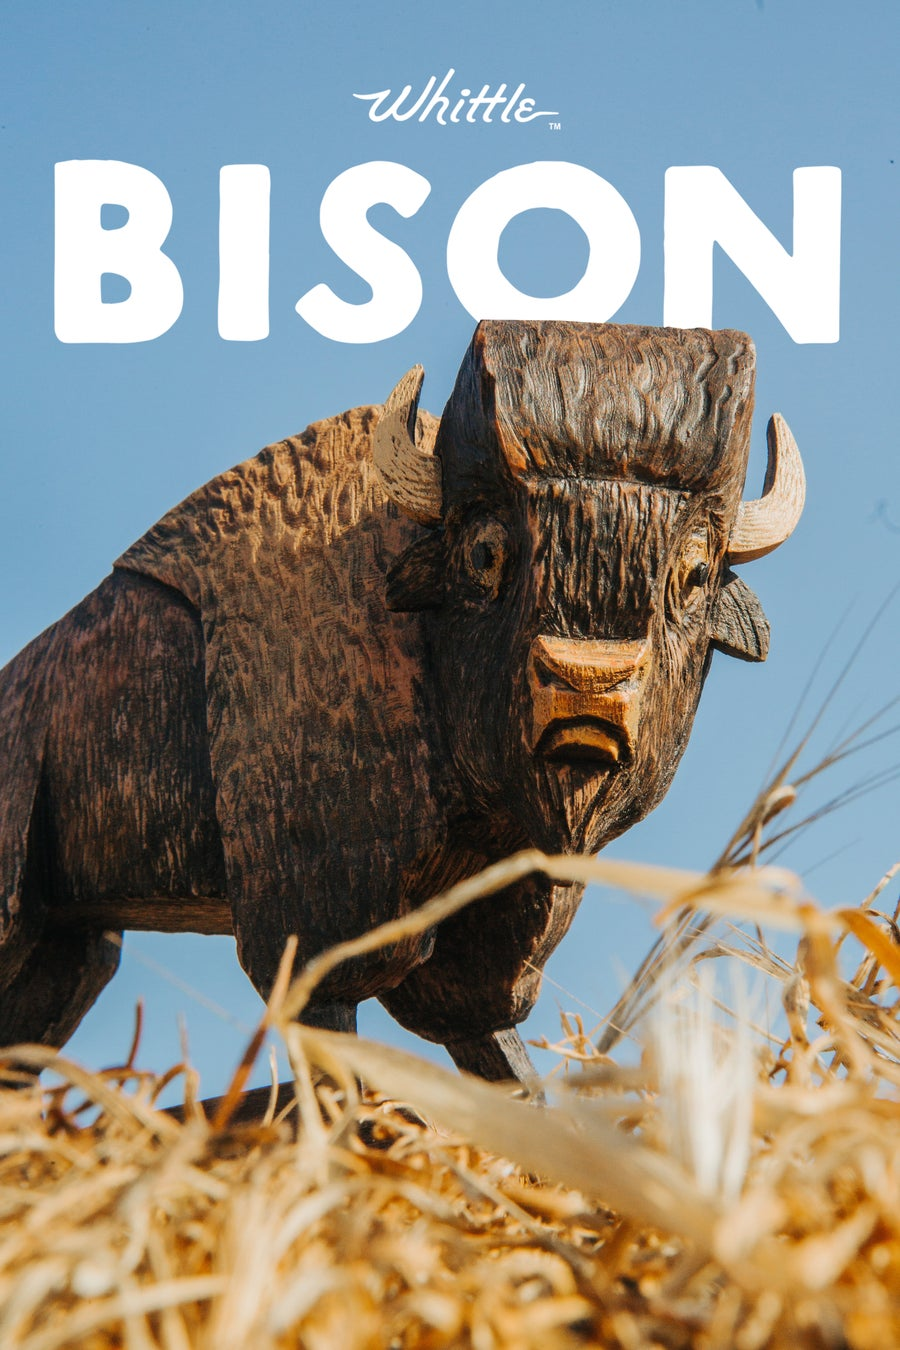 Image of Whittle Bison